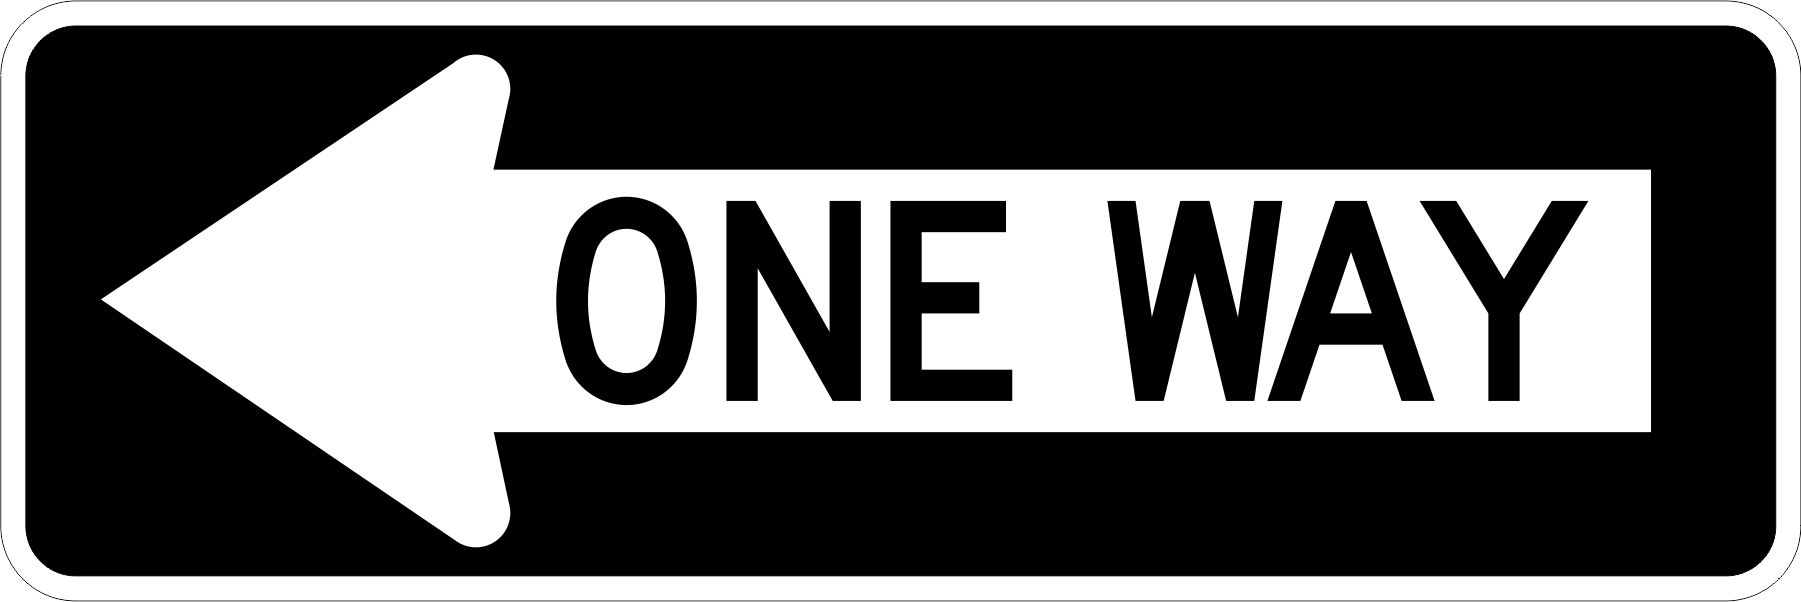 R6 1 One Way Arrow